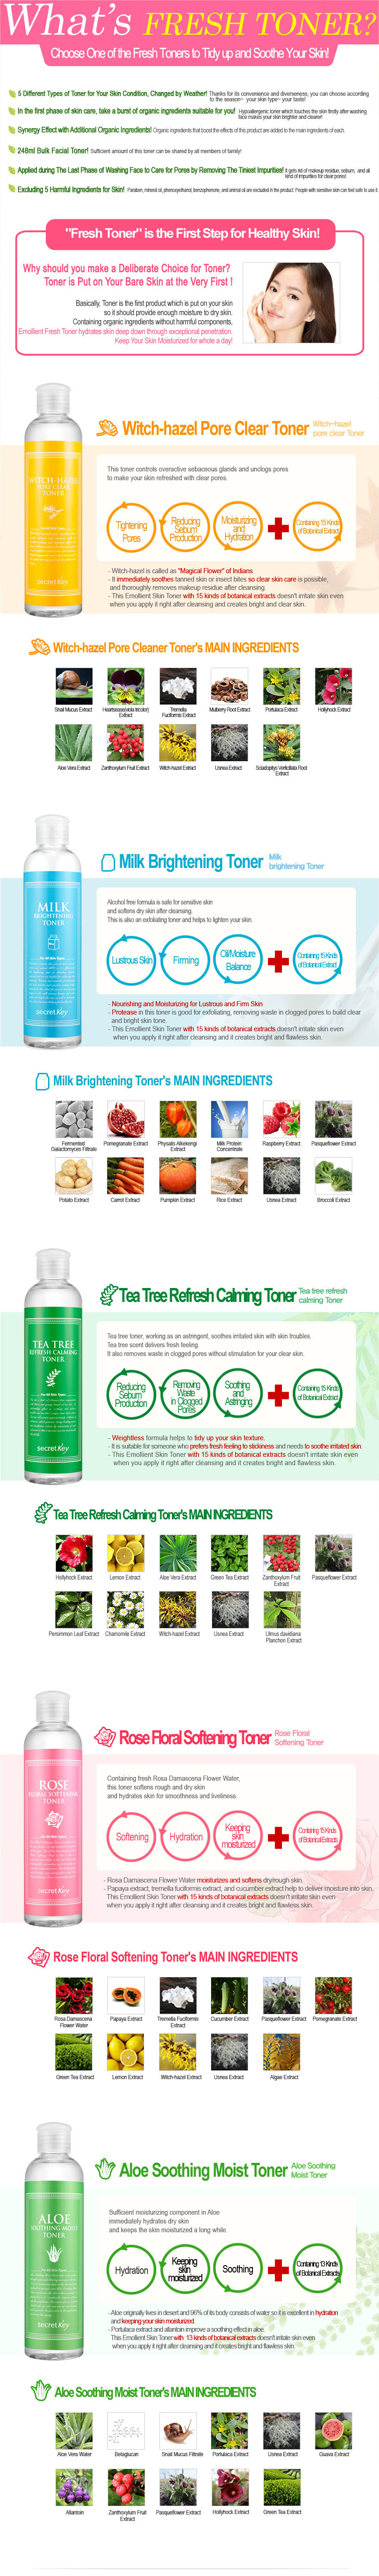 Secret Key Official Fresh Toner 248ml Aloe Tea Tree Witch Hazel Milk Ph 543 Teetree 527 Rose 539 520